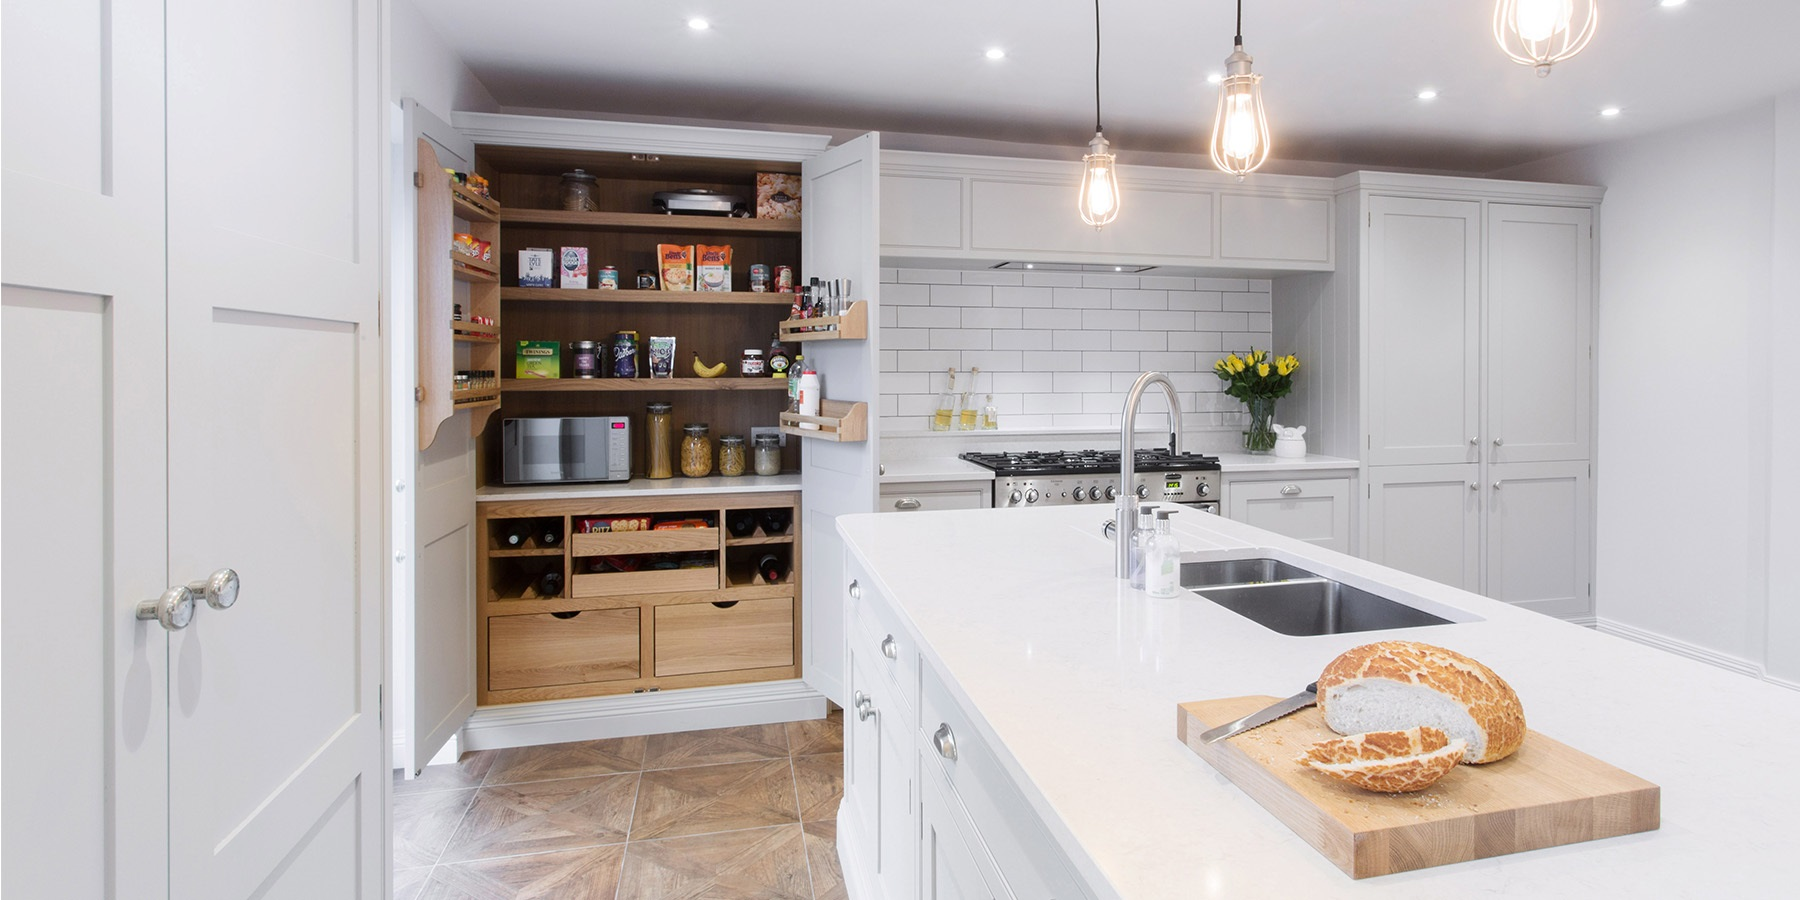 Classic Grey Handmade Shaker Kitchen - Beautiful bespoke Burlanes Wellsdown kitchen with white worktops, central kitchen island and large larder.